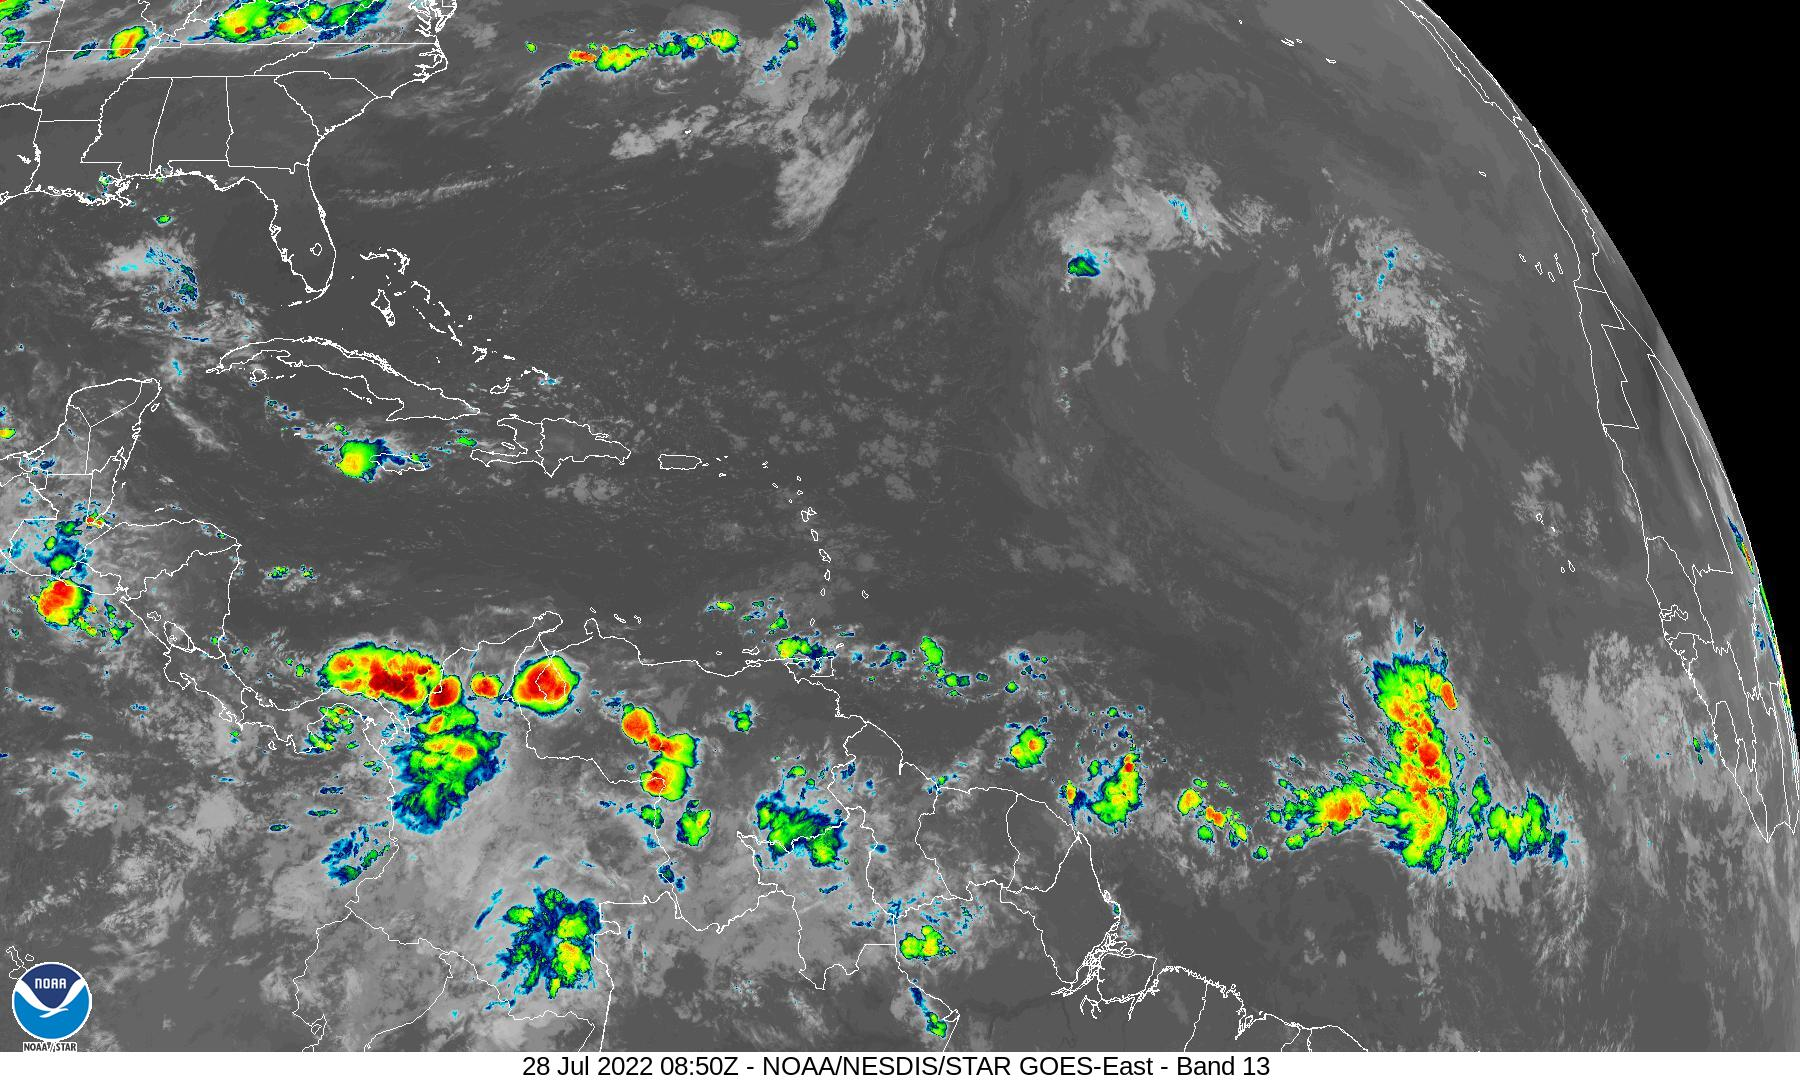 GOES-East Band 13 Infrared image of the tropical Atlantic